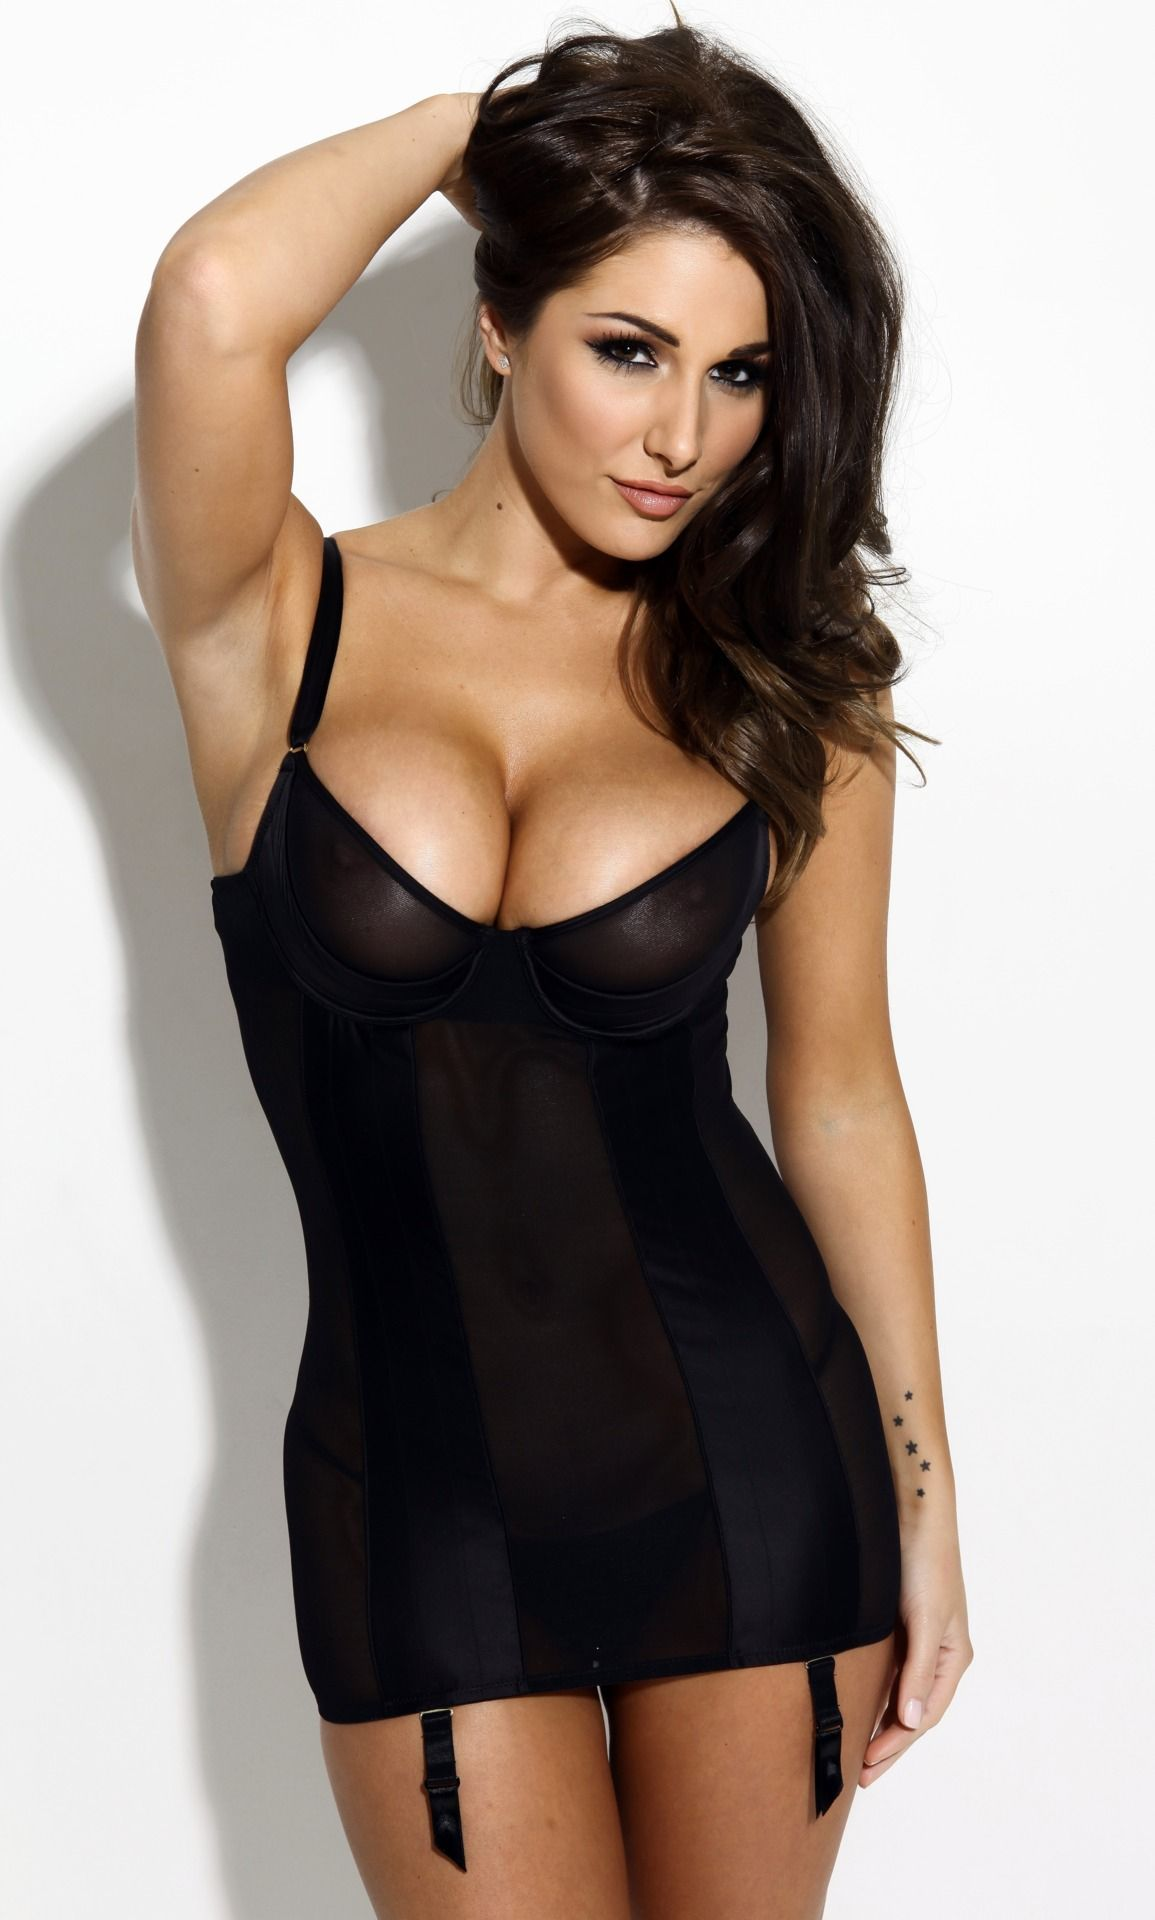 Watch Lucy pinder lingerie video